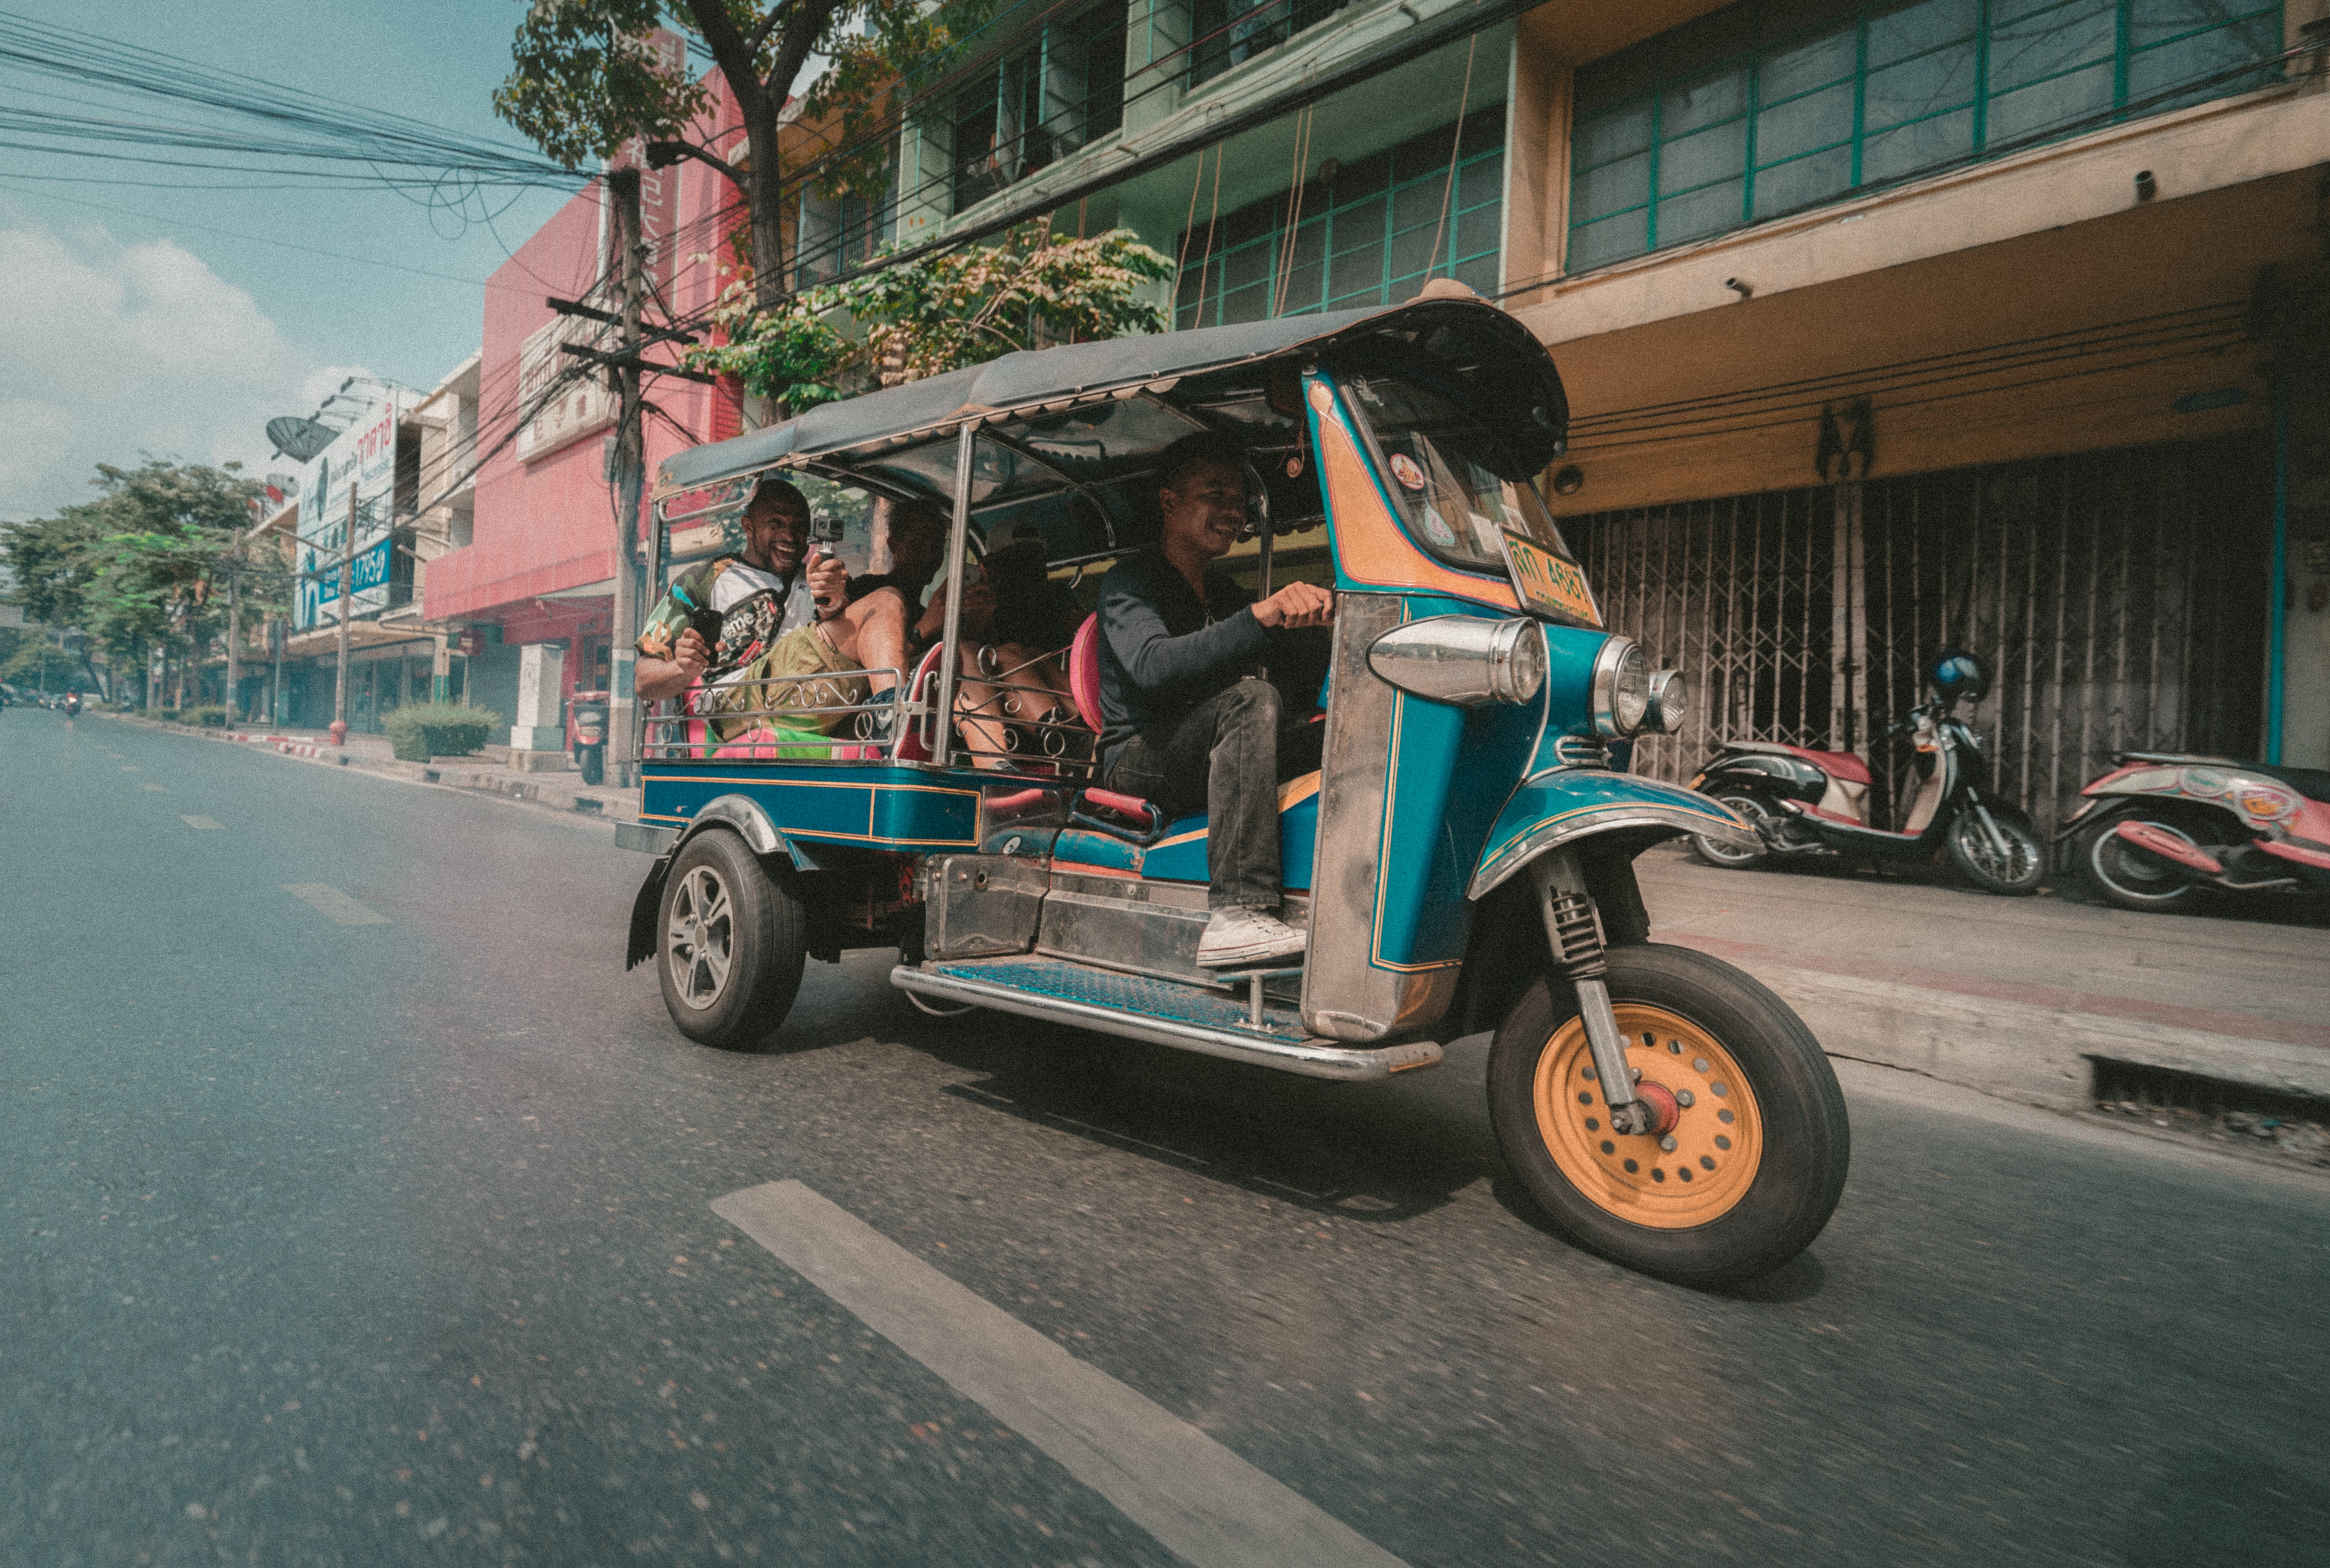 Small colorful taxi with several passengers drives down the street near buildings in Bangkok